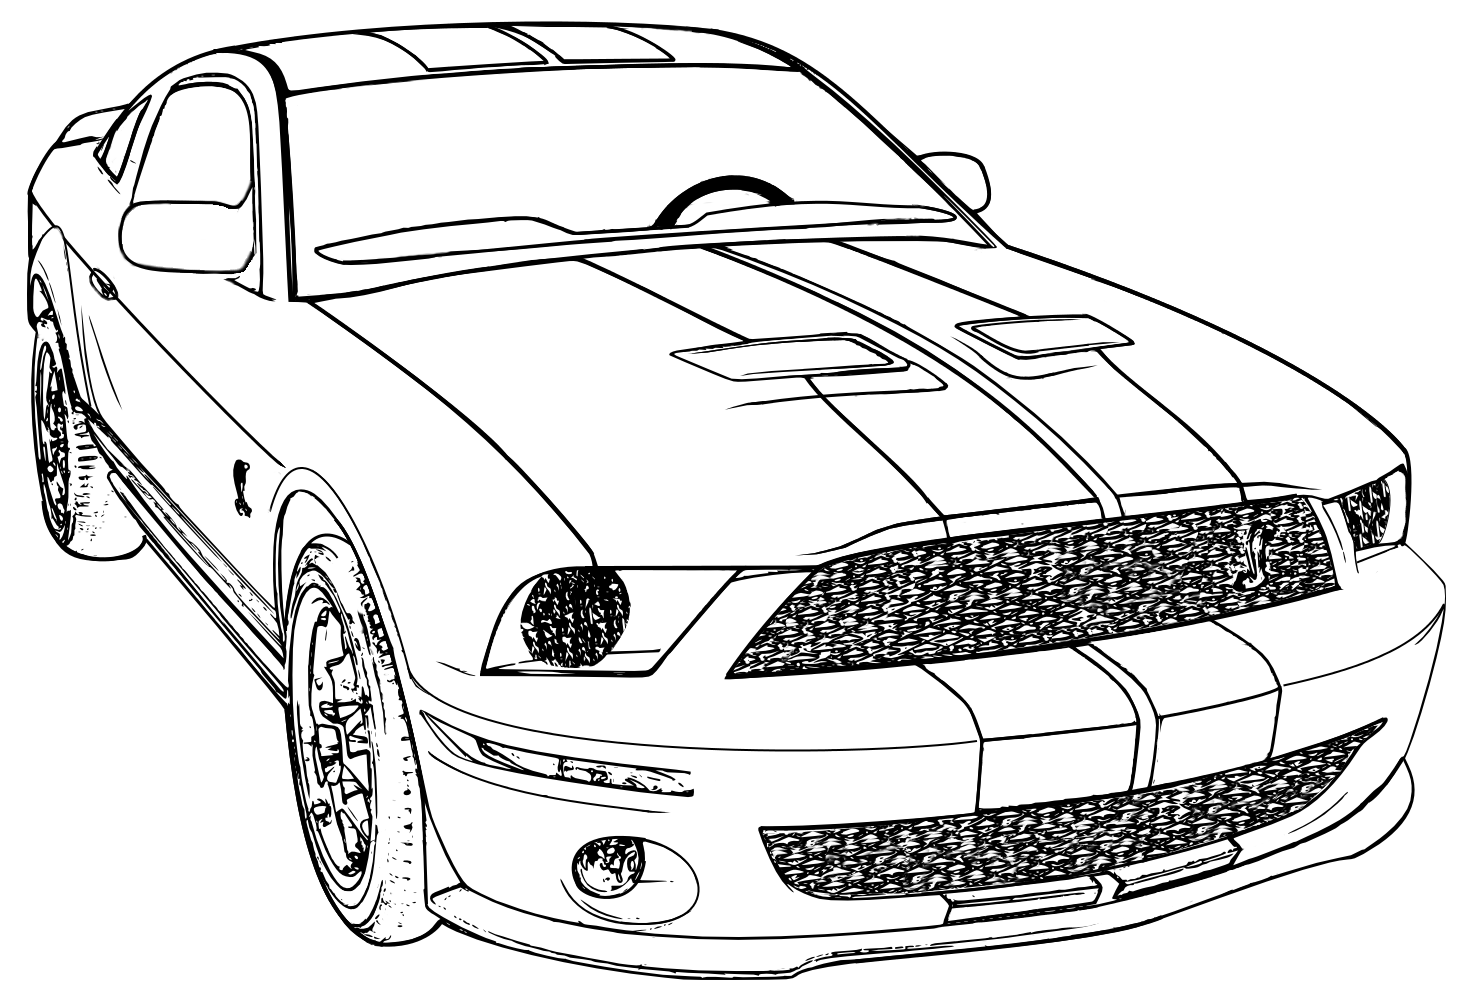 Coloring in the car - Printable Mustang Car Car Coloring Page Ford Mustang